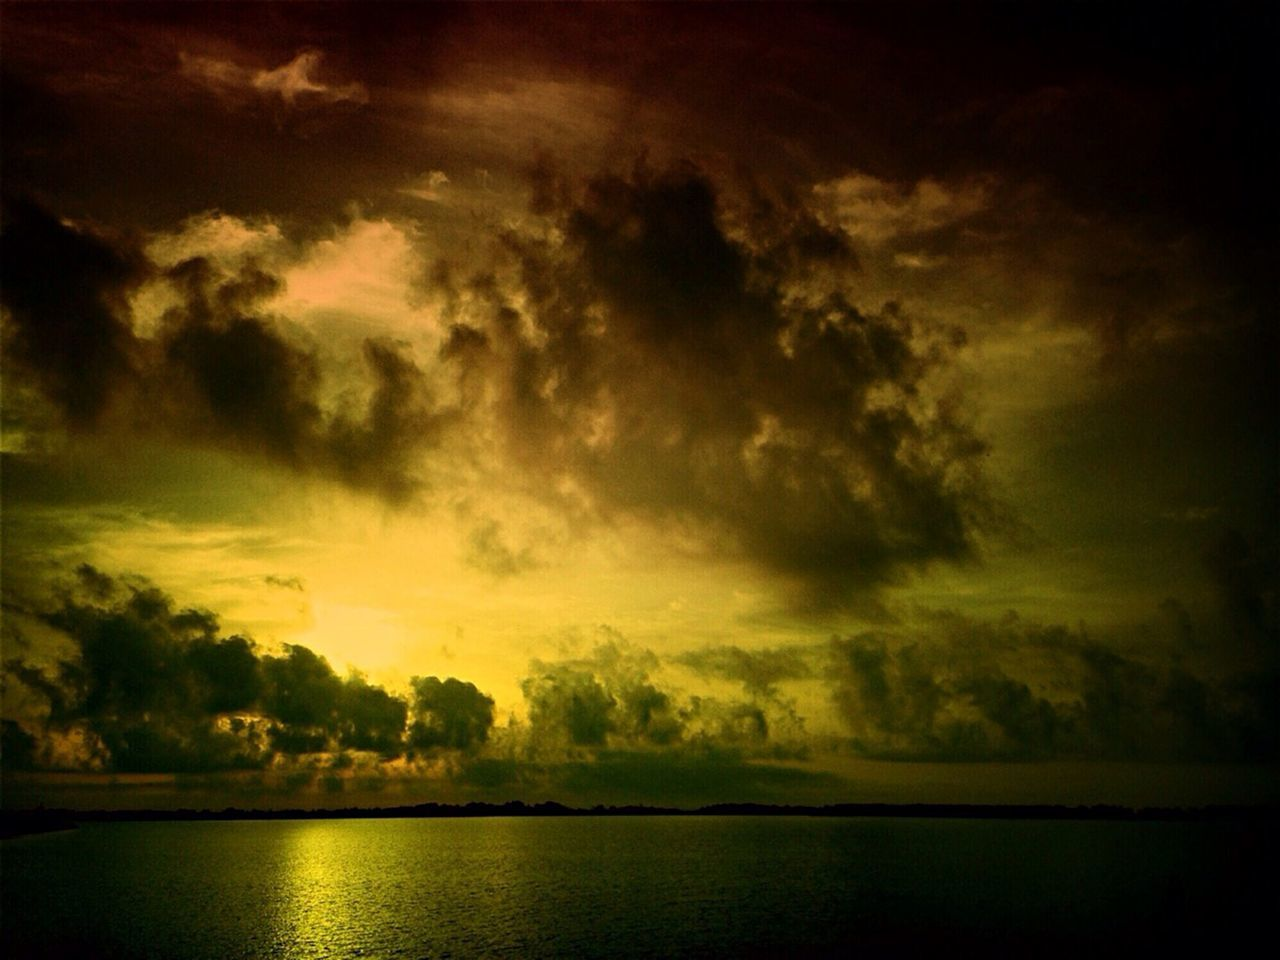 I RUMBLE I Stenkas Colored World Stenkas Monster Edits Nature Sea Sea And Sky Sky And Clouds Clouds Clouds And Sky and also Hello World Check This Out EyeEm EyeEm Nature Lover EyeEm Best Shots Taking Photos Enjoy whatever you do, wherever you are I Rumble